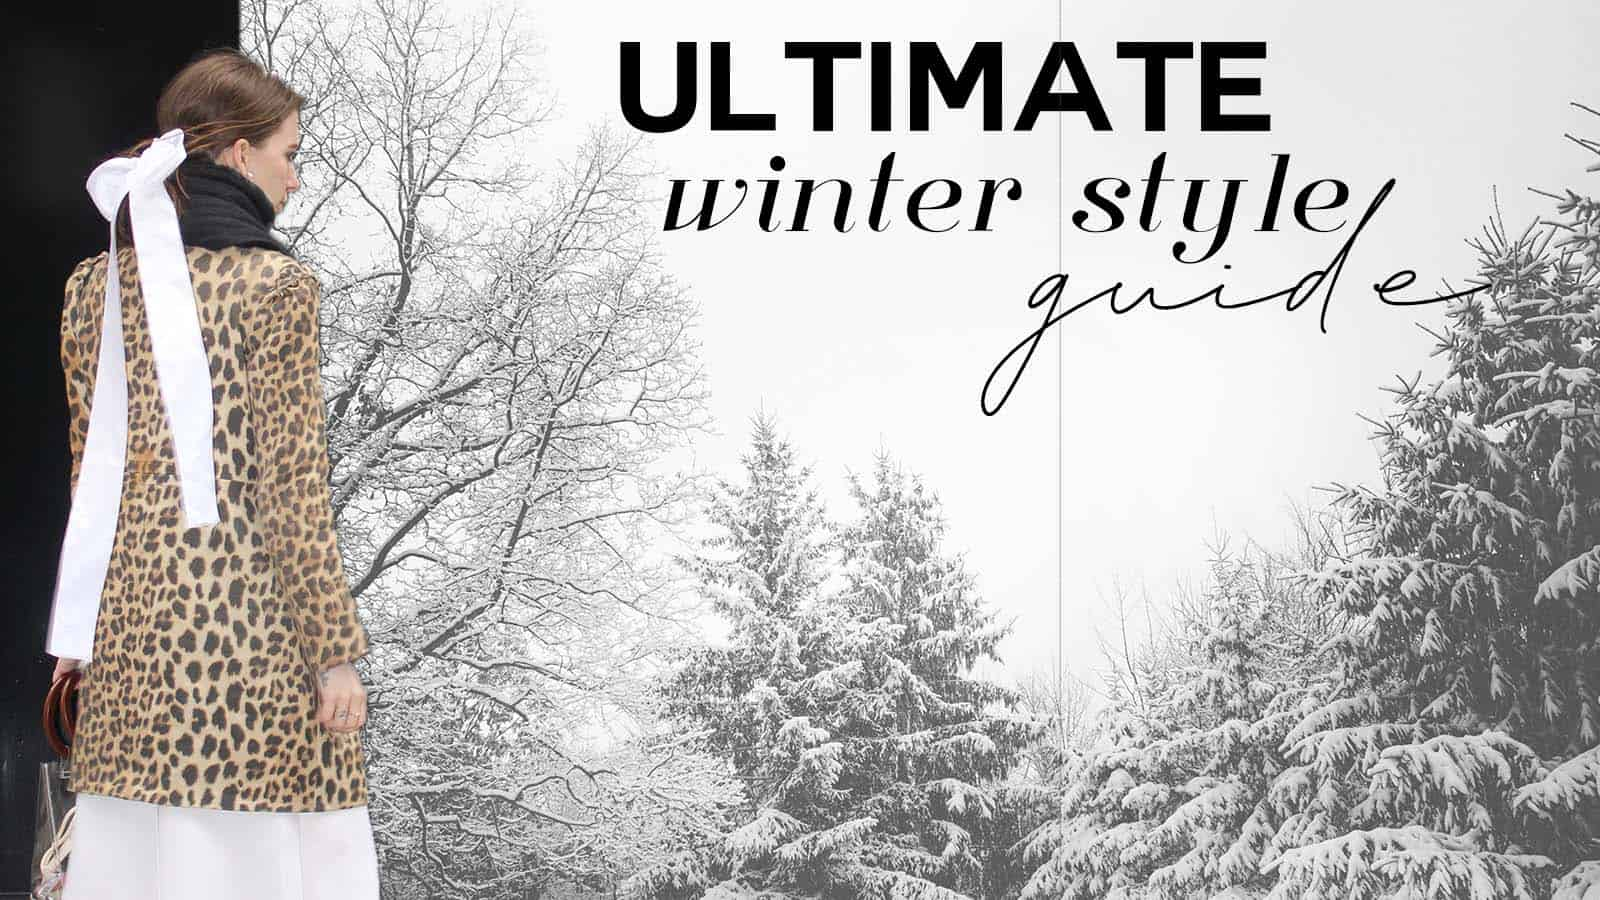 The Ultimate Winter Style Guide